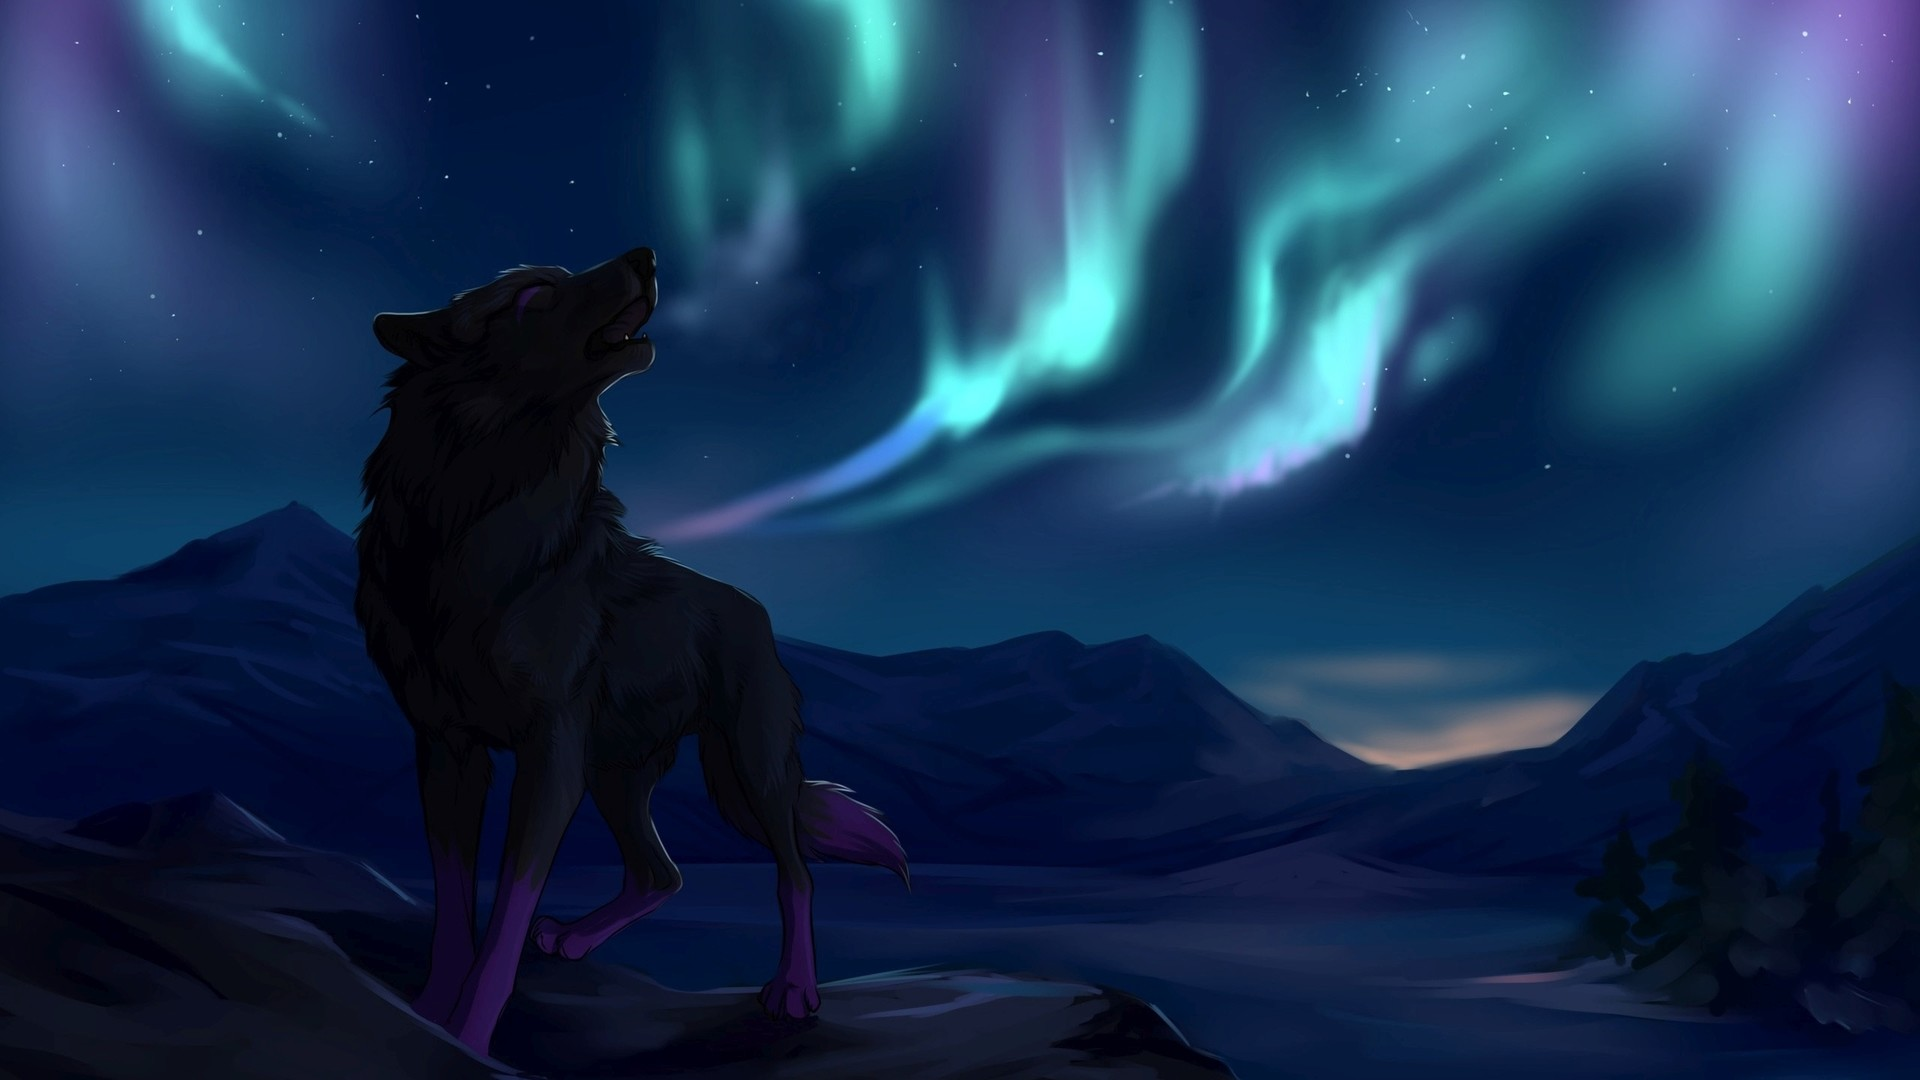 Howling wolf wallpaper 64 pictures - Wolf howling hd ...